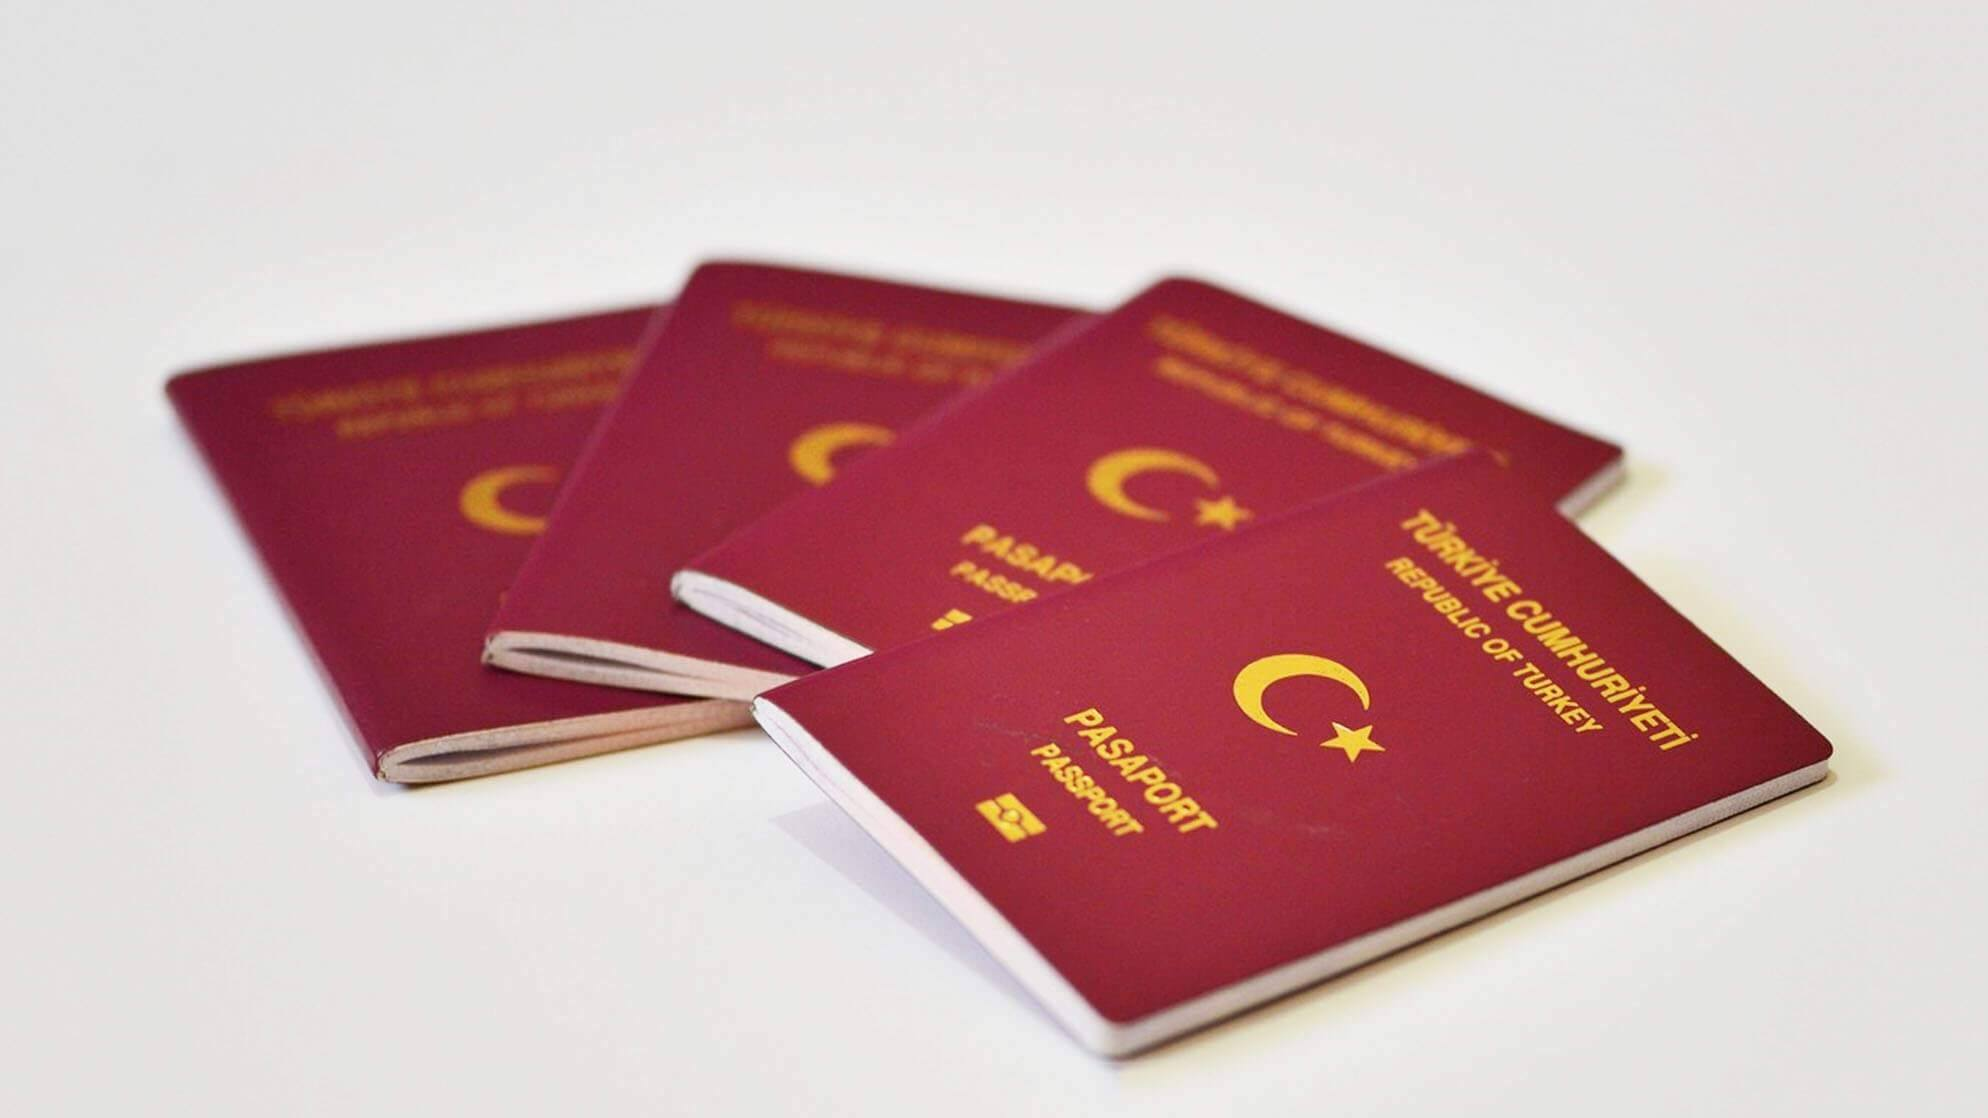 Turkish citizenship through marriage - conditions and required documents